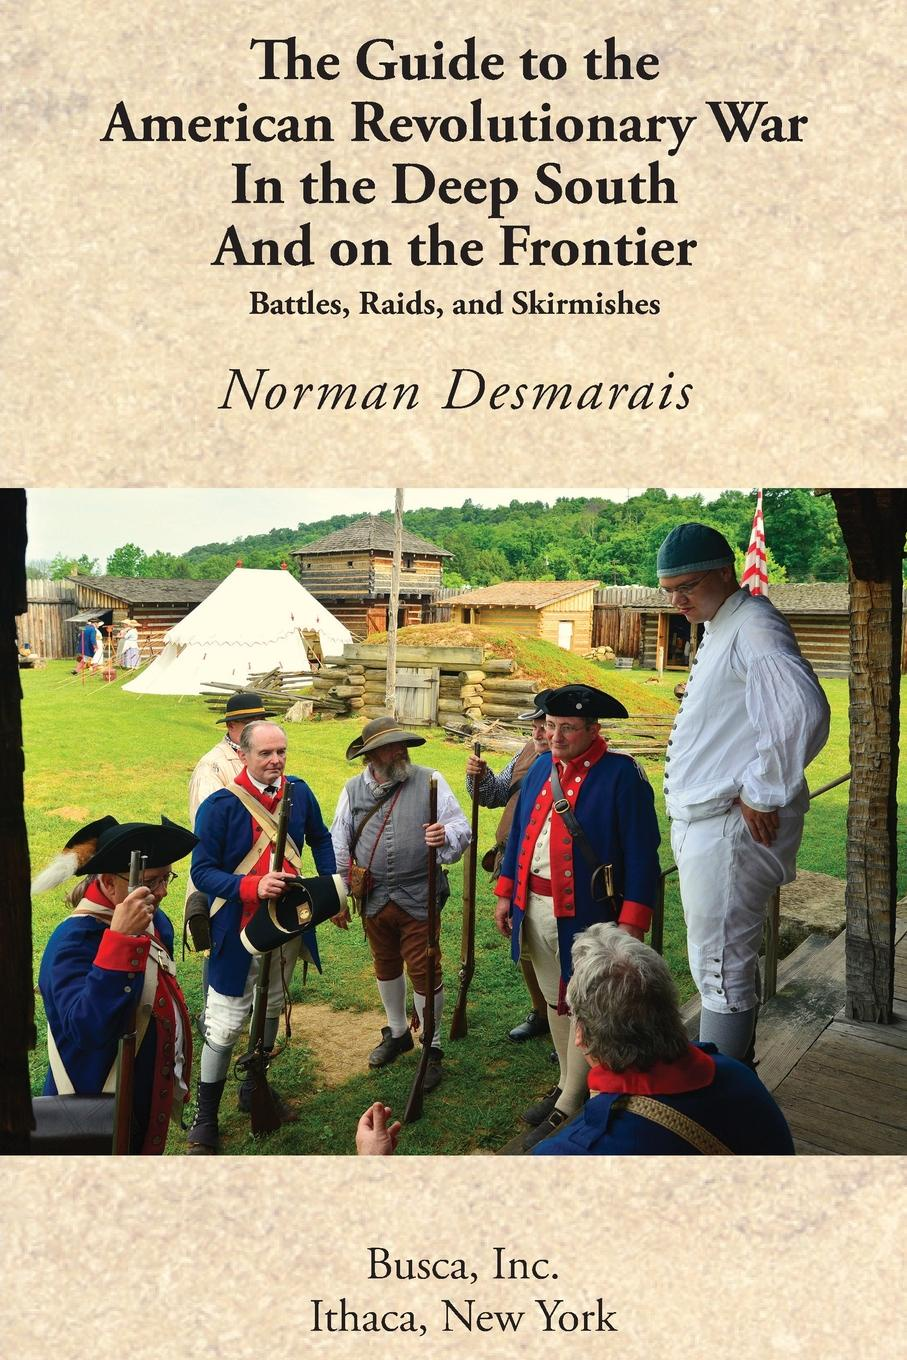 Norman Desmarais The Guide to the American Revolutionary War in Deep South and on Frontier